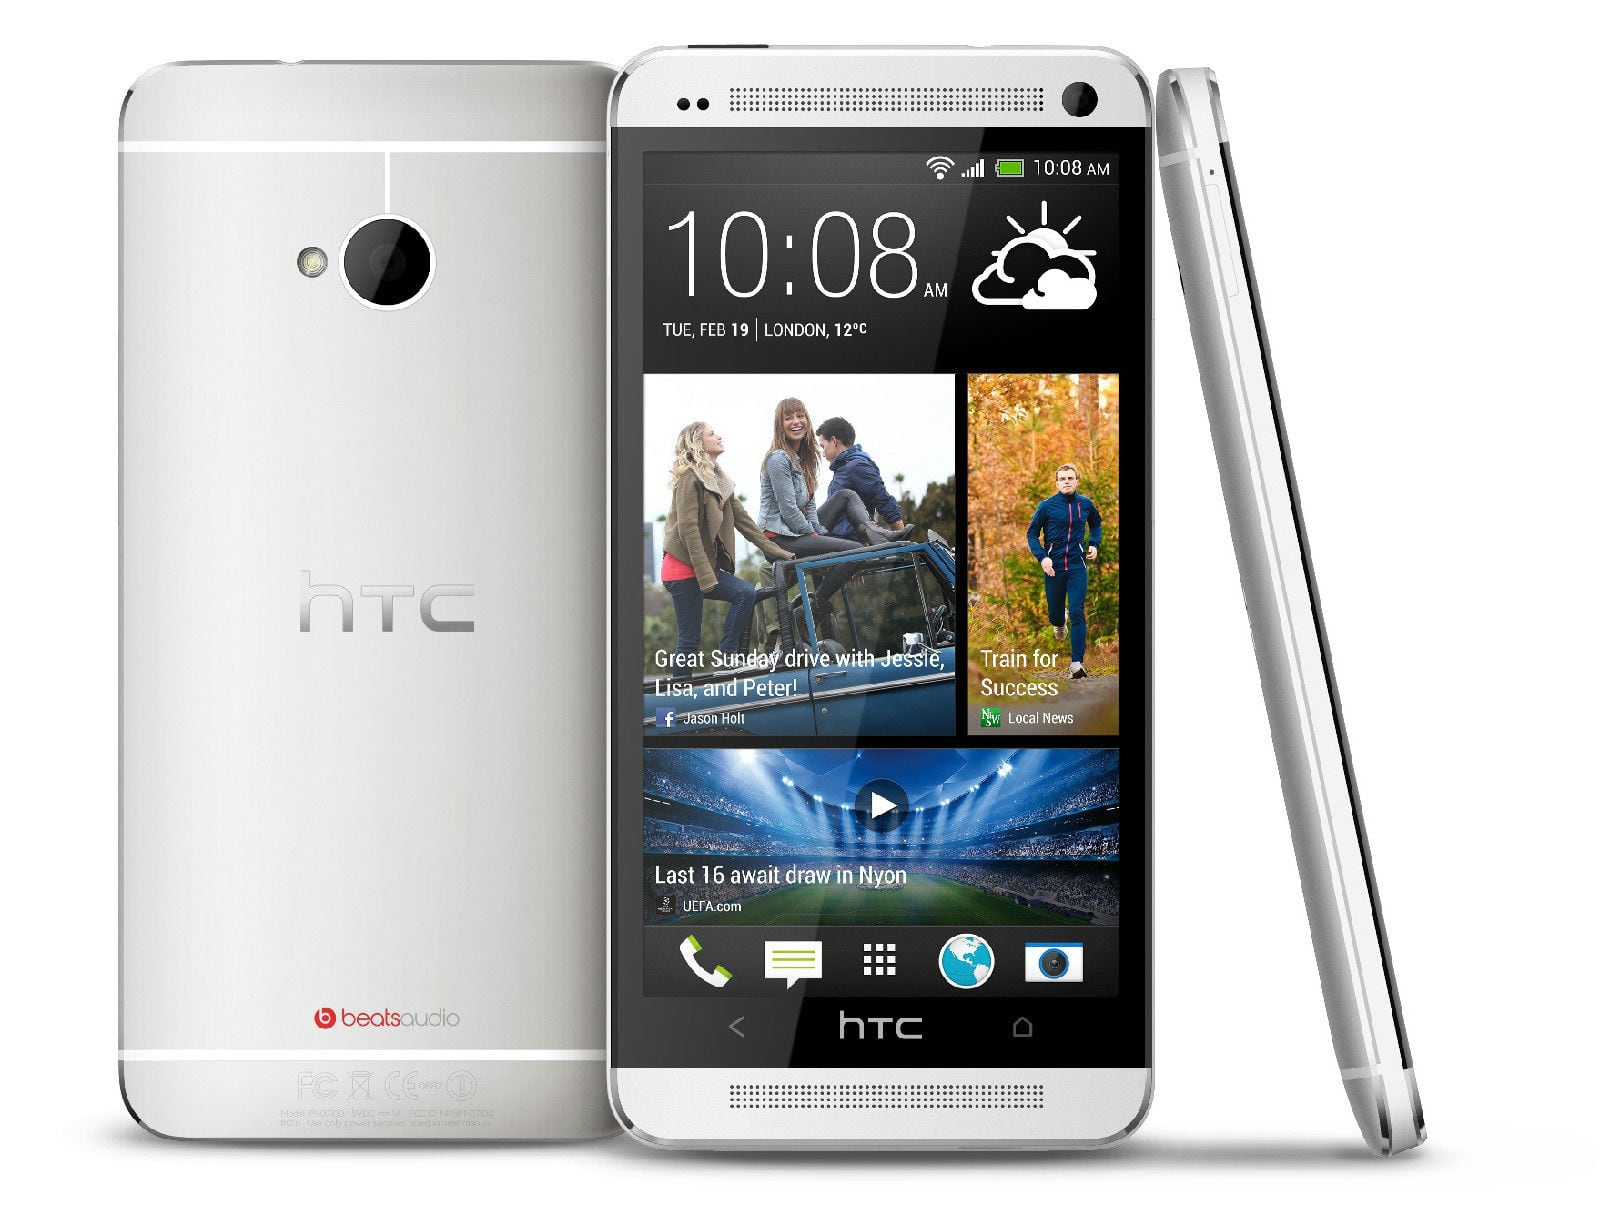 HTC One M7 32GB (T-mobile - Unlocked) 4G LTE (New) $130 + Free Shipping (eBay Daily Deal)